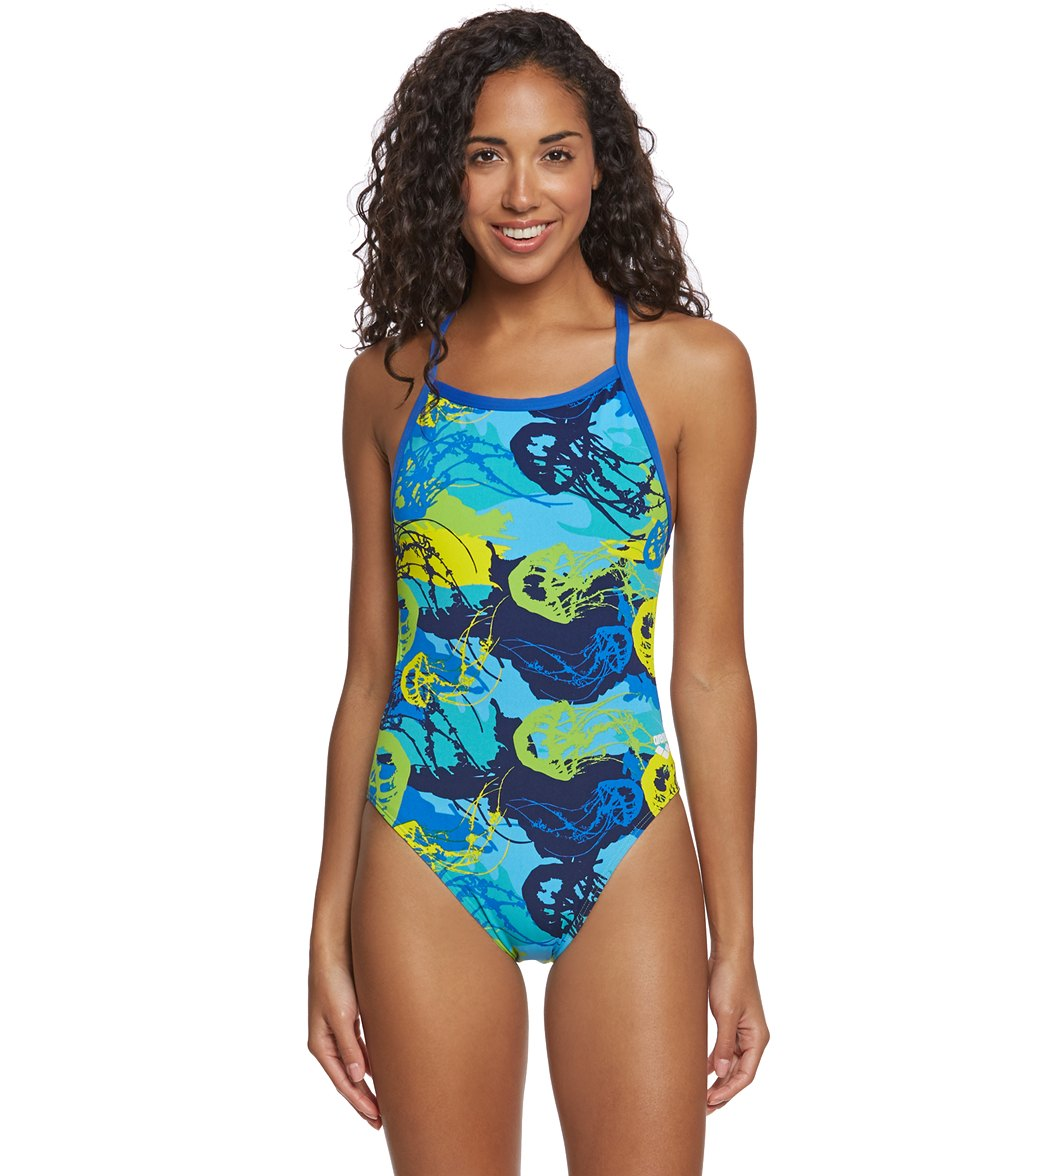 be985bdffc6fa ... Arena Women's MaxLife Underwater Thin Strap Open Racer Back One Piece  Swimsuit. Play Video. MODEL MEASUREMENTS